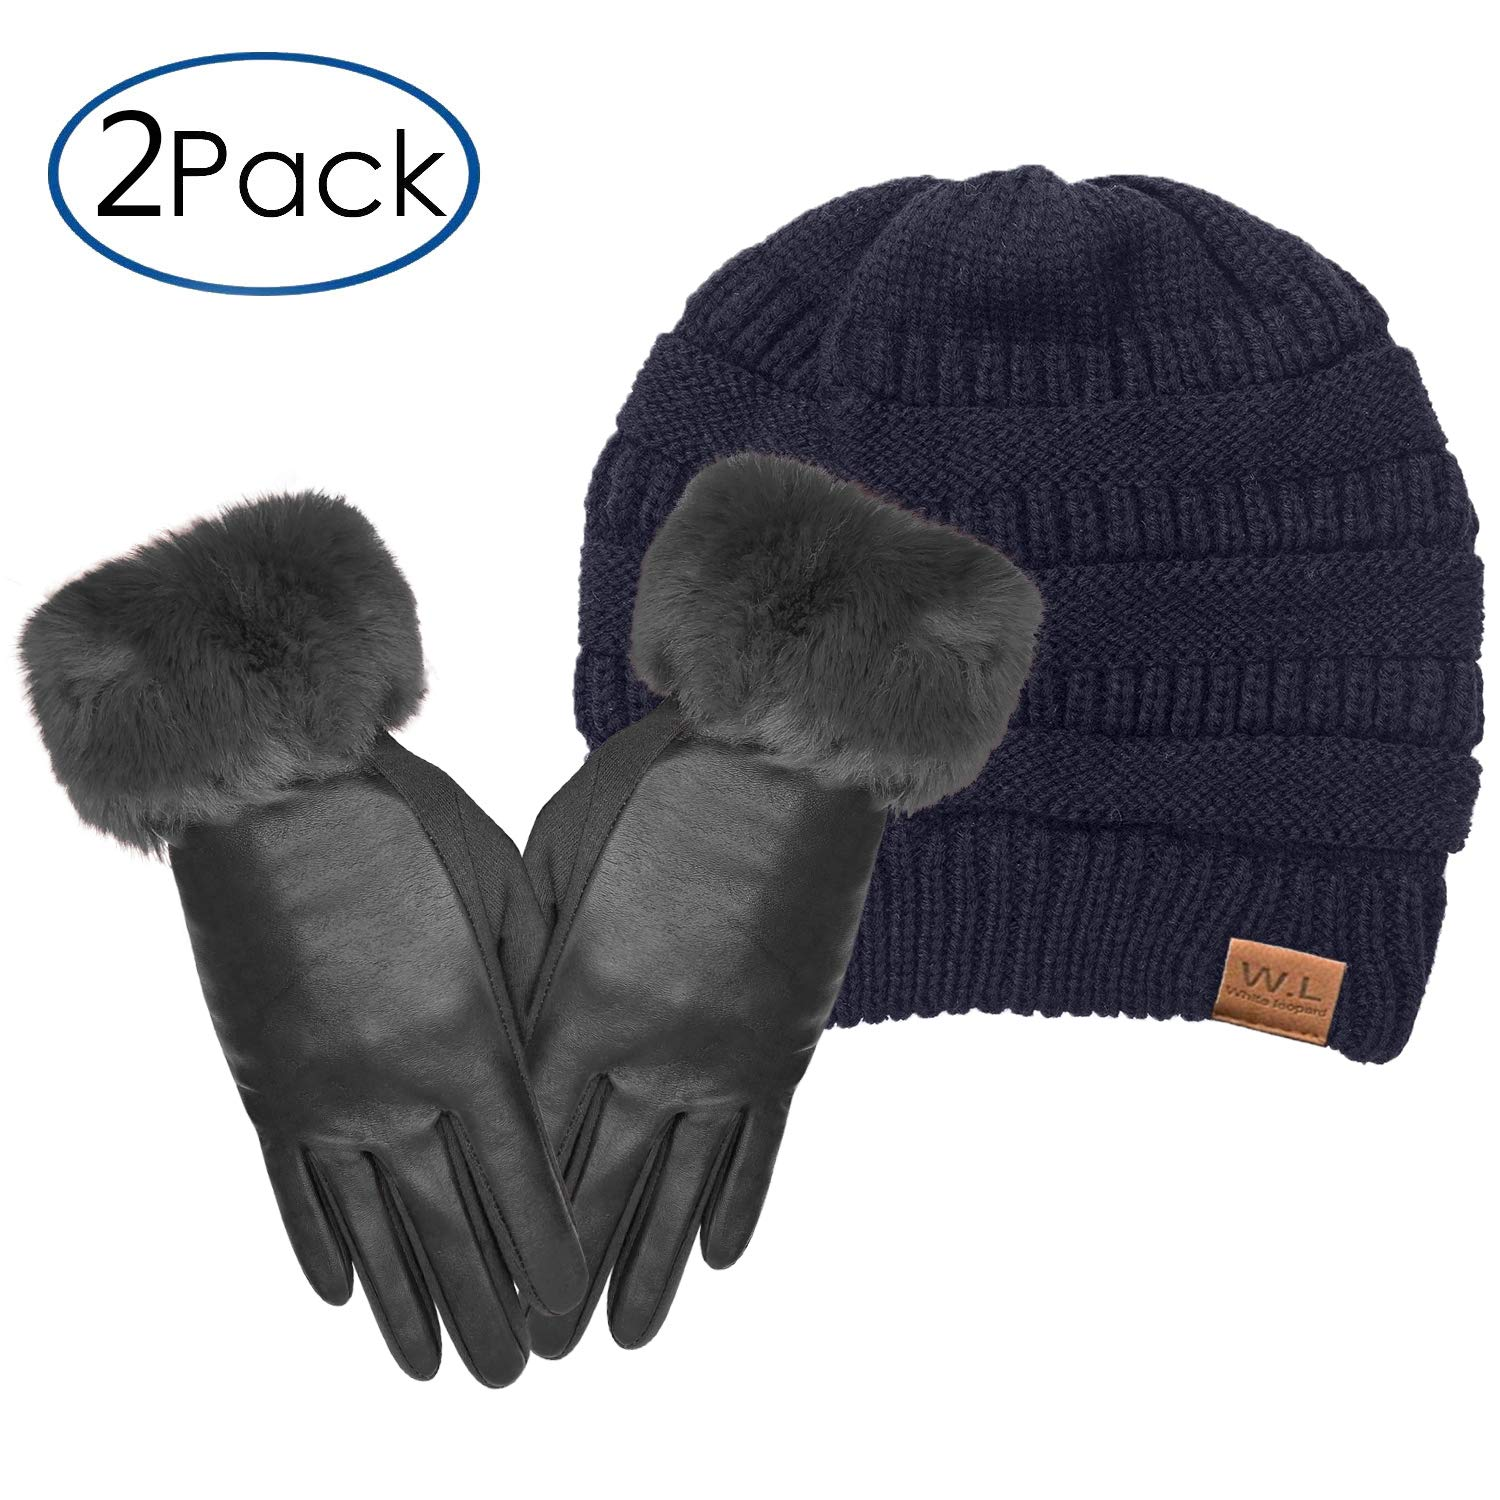 Women Leather Gloves Touchscreen Warm Plain Gloves- Touch Screen Texting for Phone (fur black+navy cc) by Whiteleopard